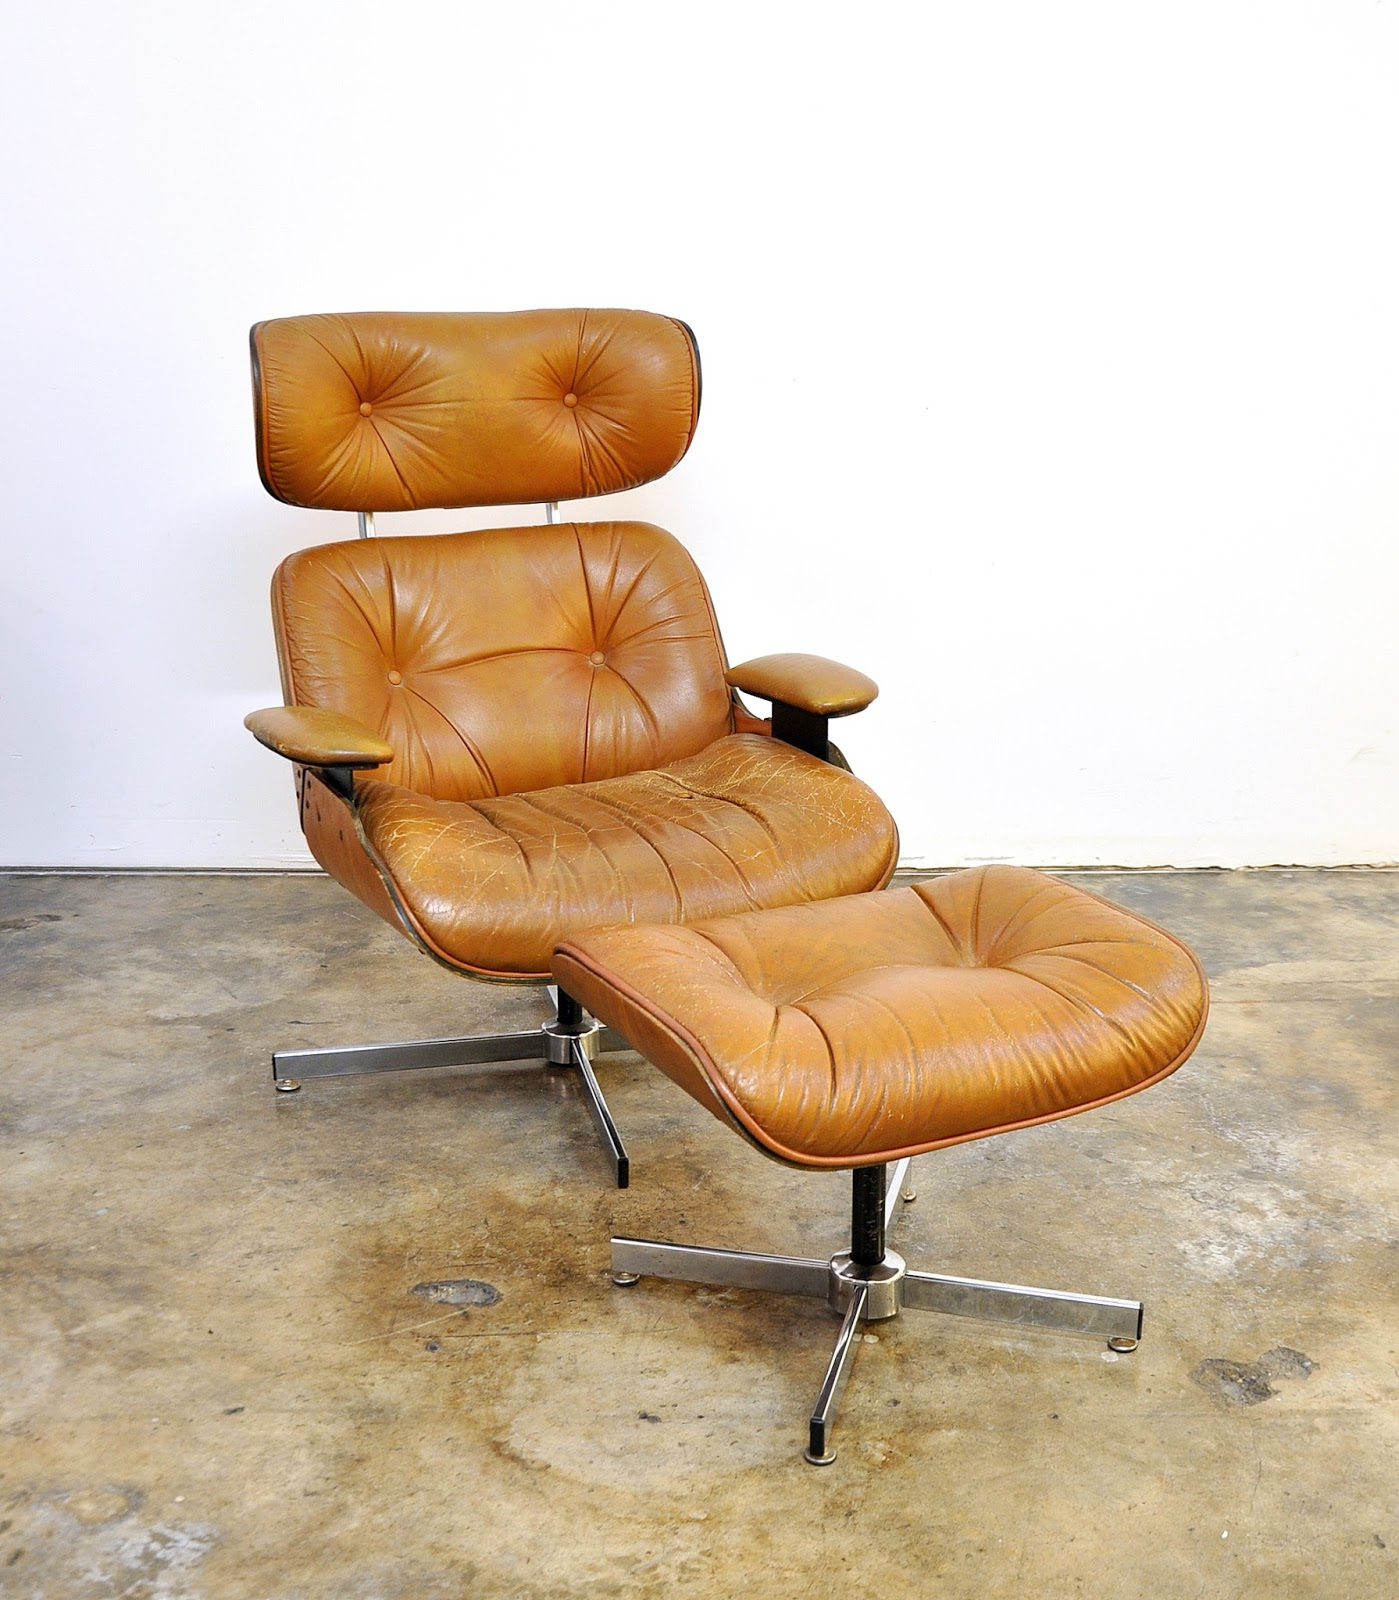 selig eames chair outdoor sling covers select modern frank doerner for style